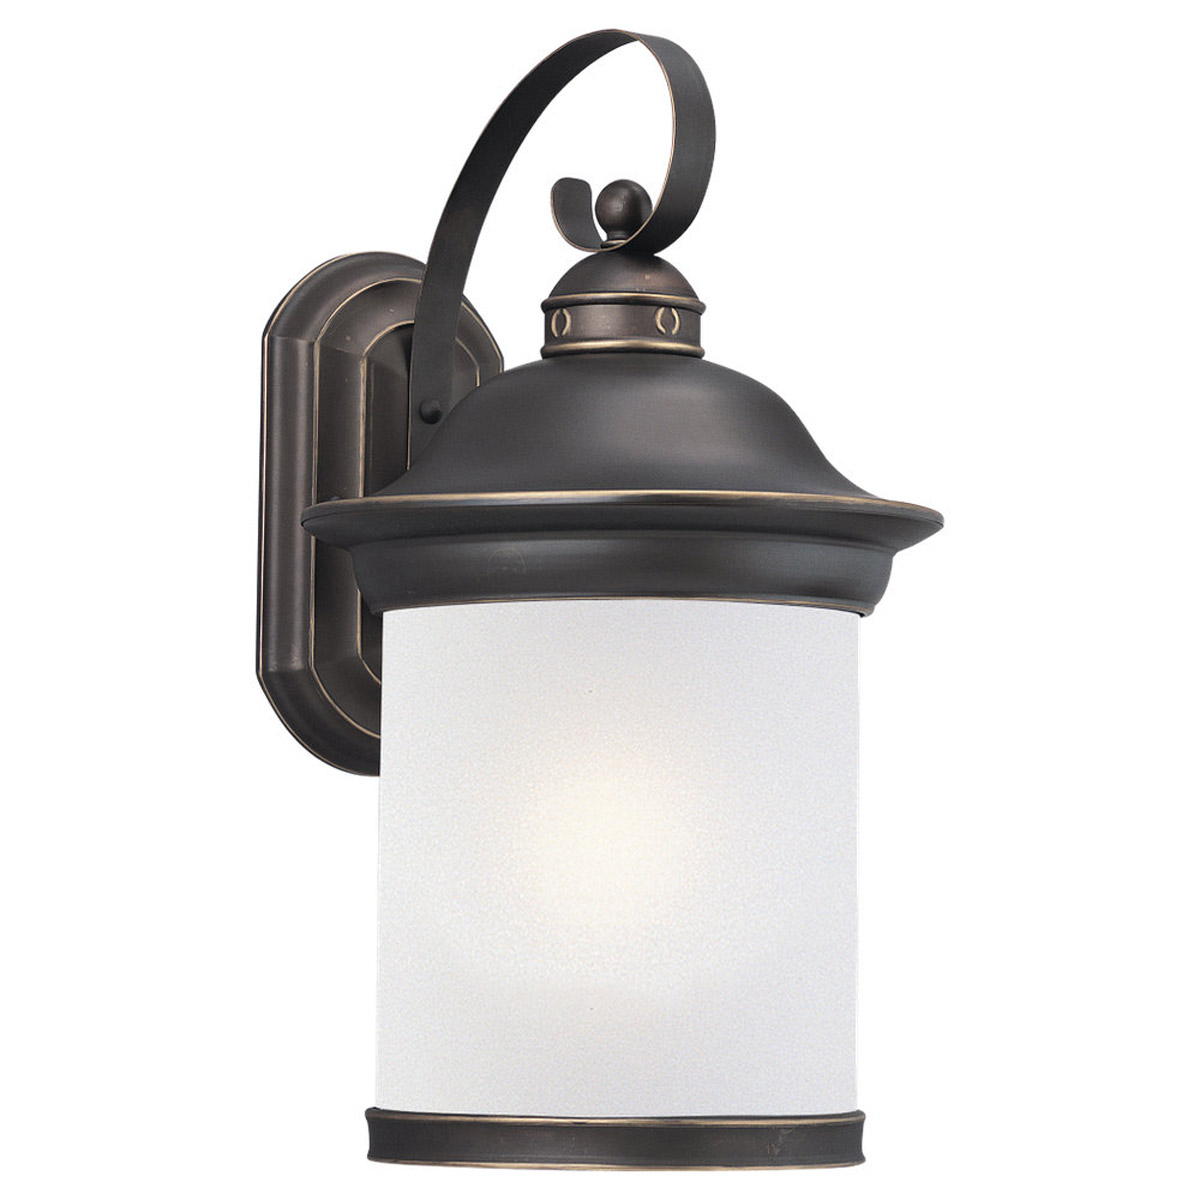 Sea Gull Lighting Hermitage 1 Light Outdoor Wall Lantern in Antique Bronze 89193BL-71